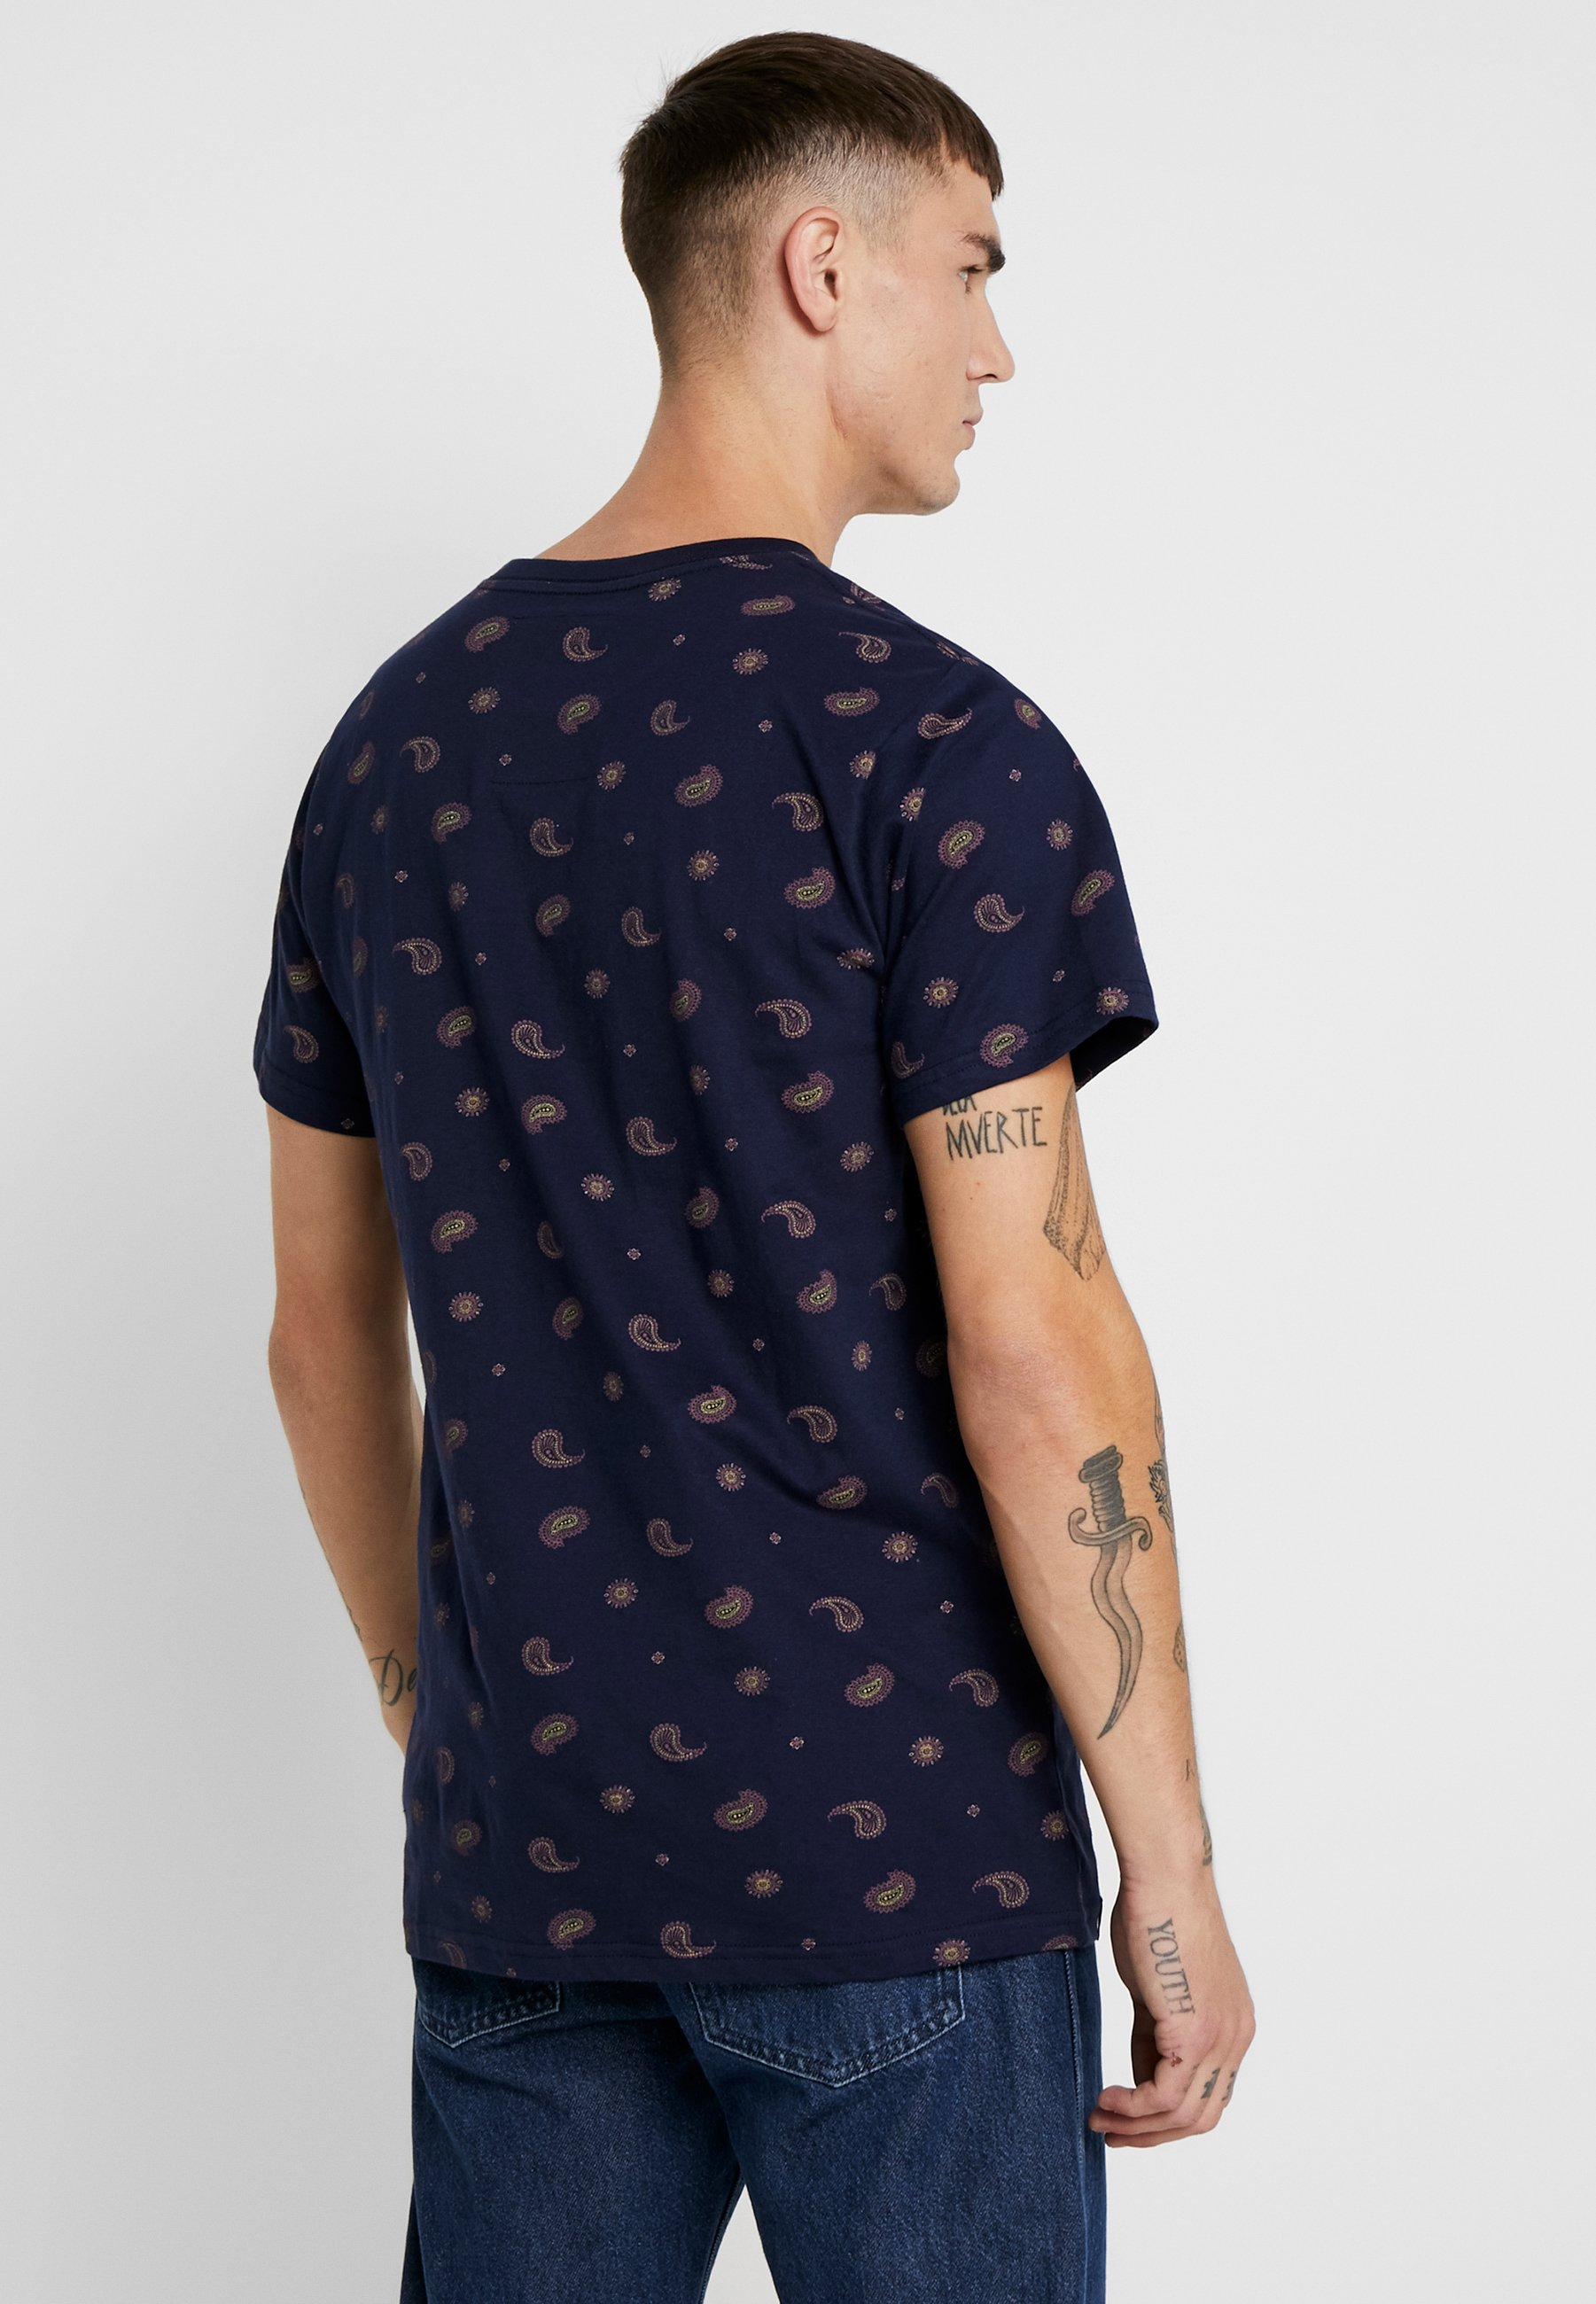 PaisleyT Imprimé Navy Dedicated Stockholm shirt lJcK1TFu3